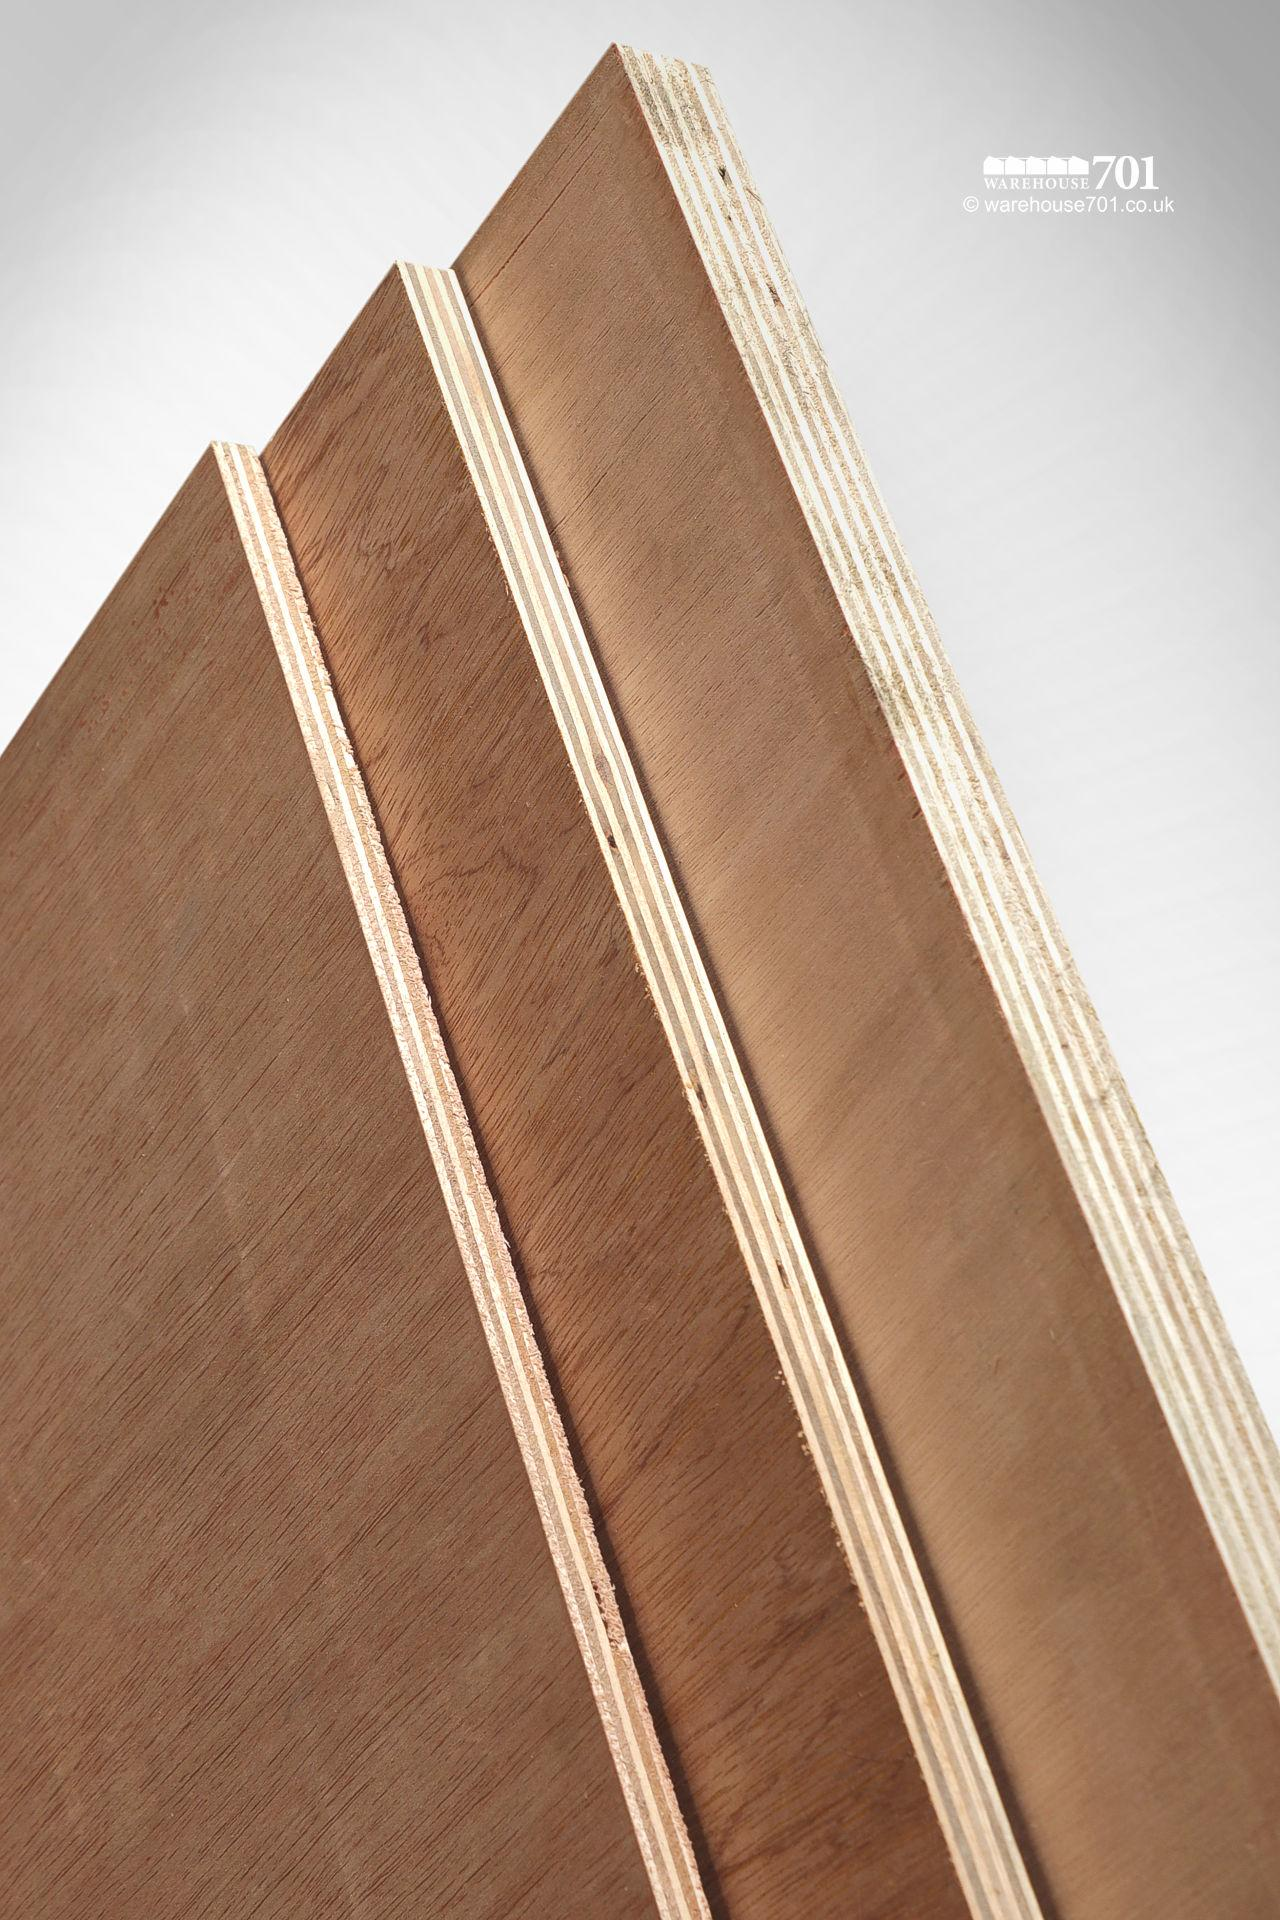 New Xtraplex® HARDWOOD Plywood sheet in 9mm, 12mm and 18mm #3